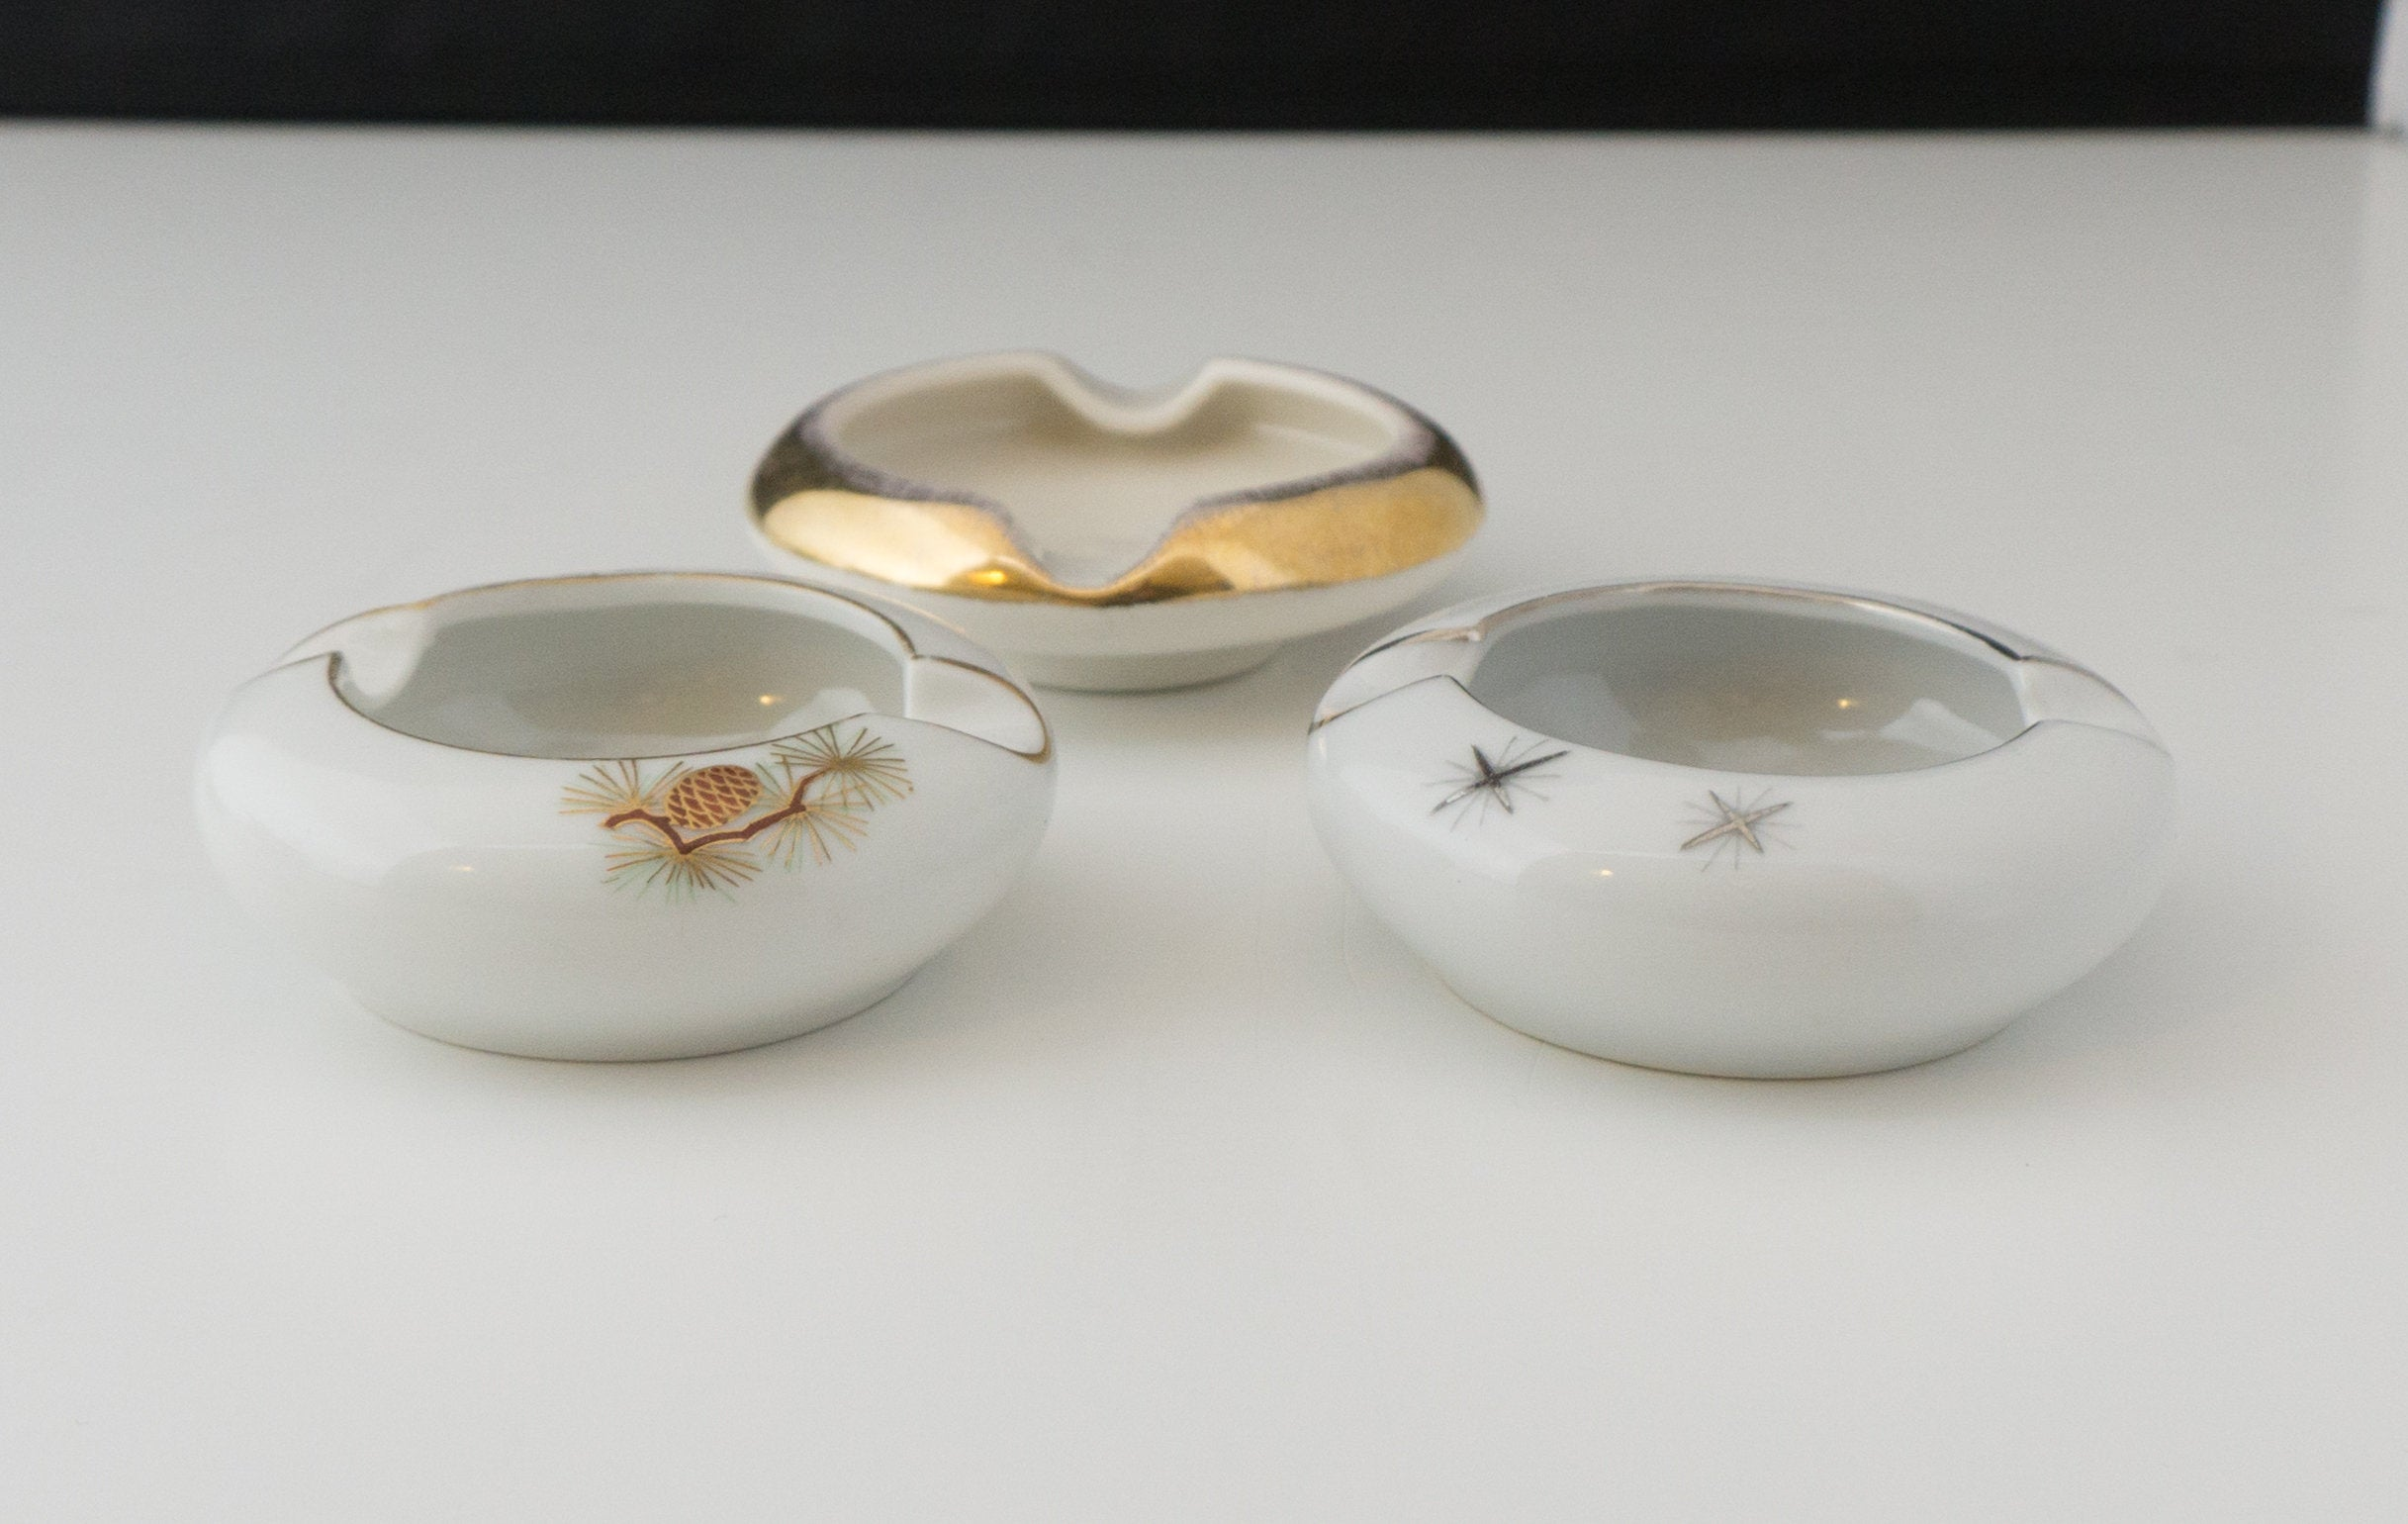 Collection of SIX White Fine China Fukagawa Japanese Mid Century Modern Personal Ashtrays